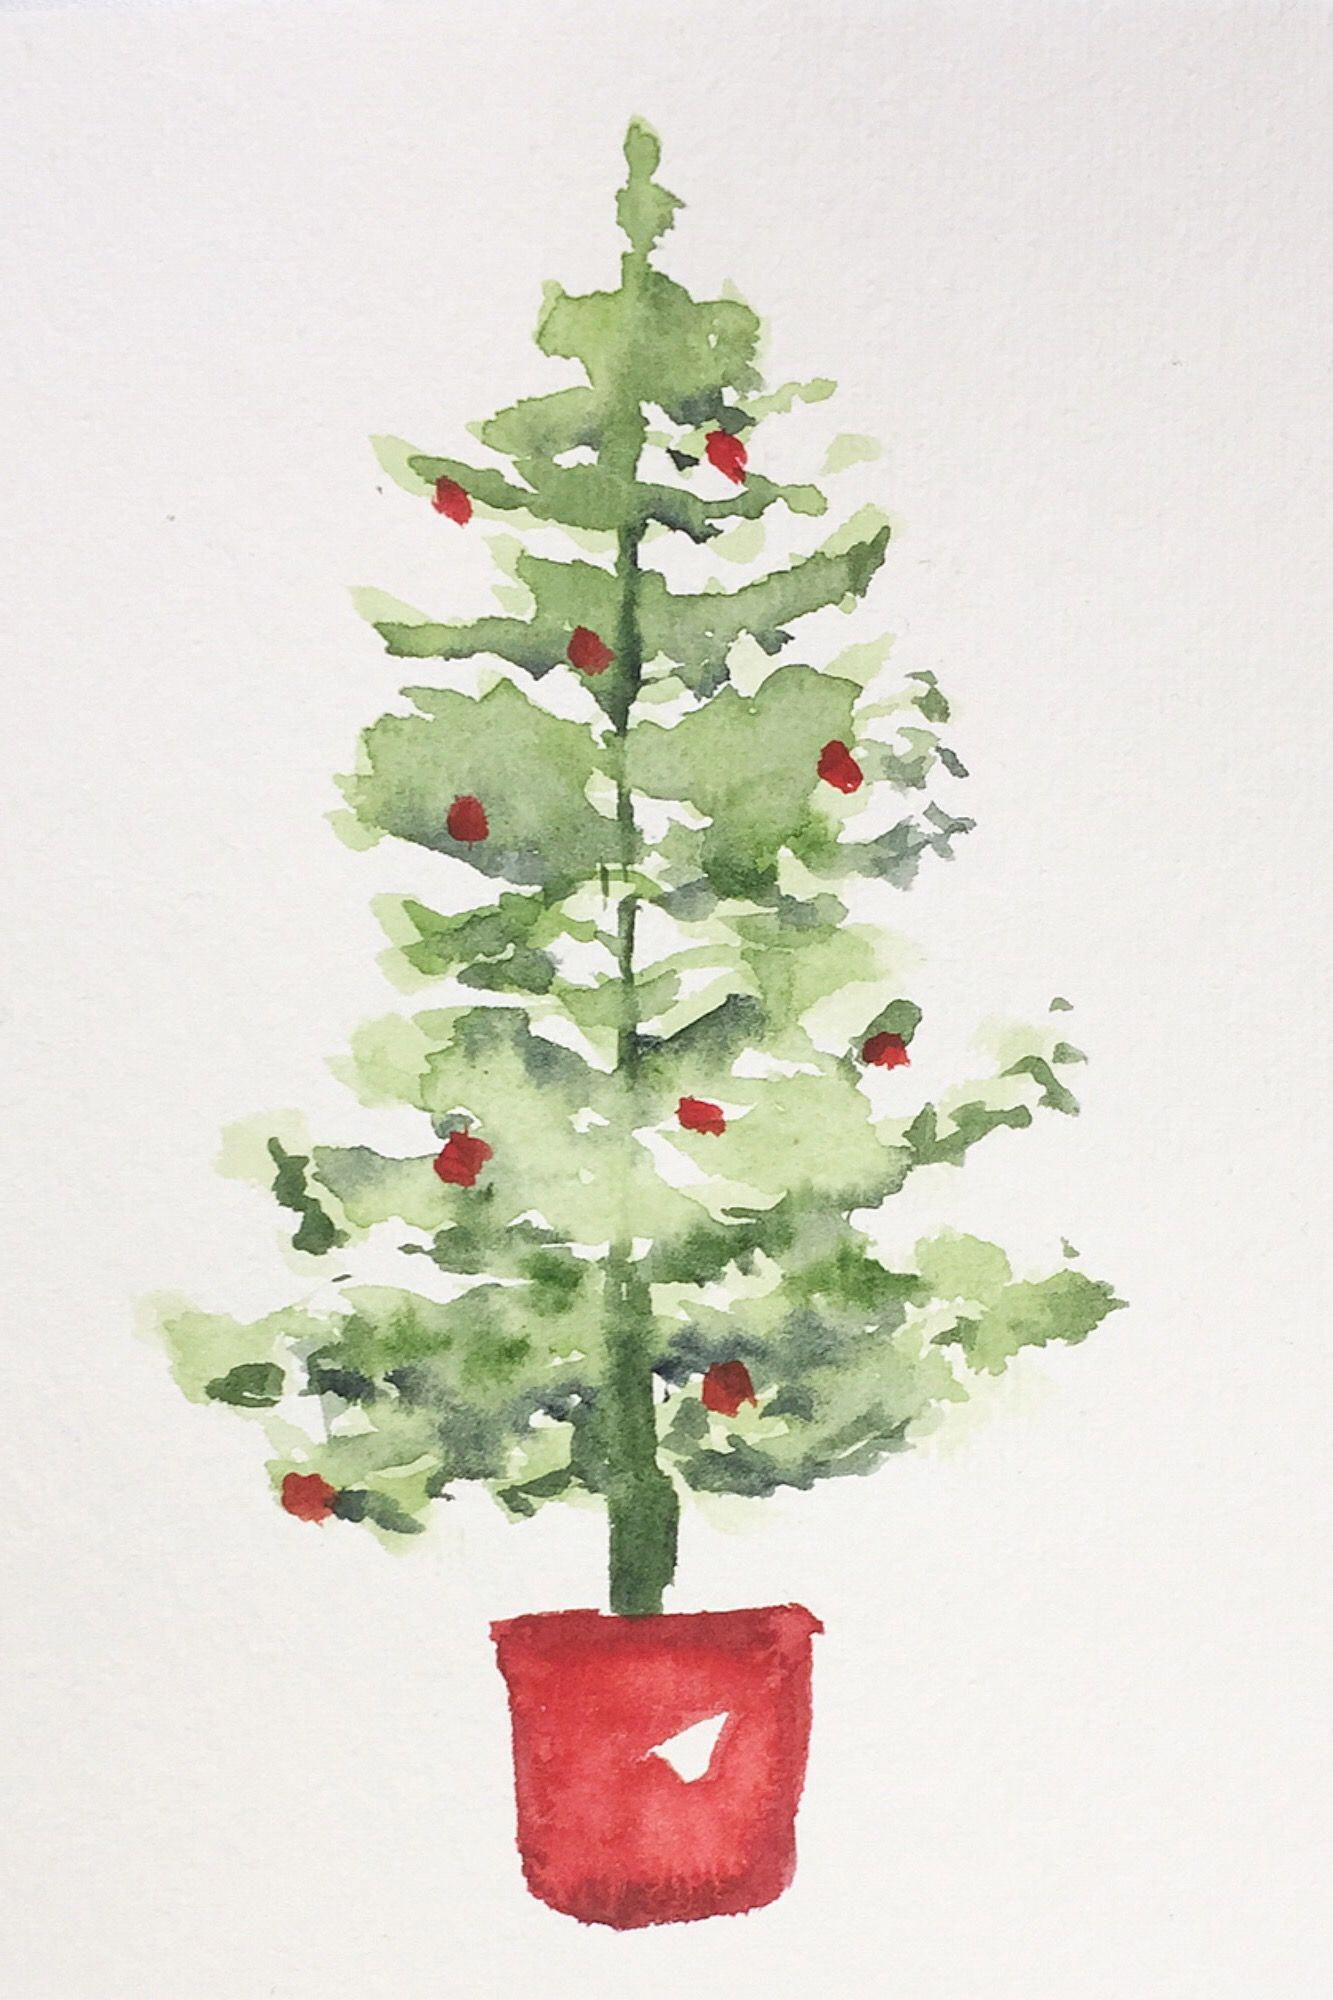 Read More About Diy Christmas Projects Christmascardideasdiy Christmascardsdiy Watercolor Christmas Tree Watercolor Christmas Cards Christmas Watercolor